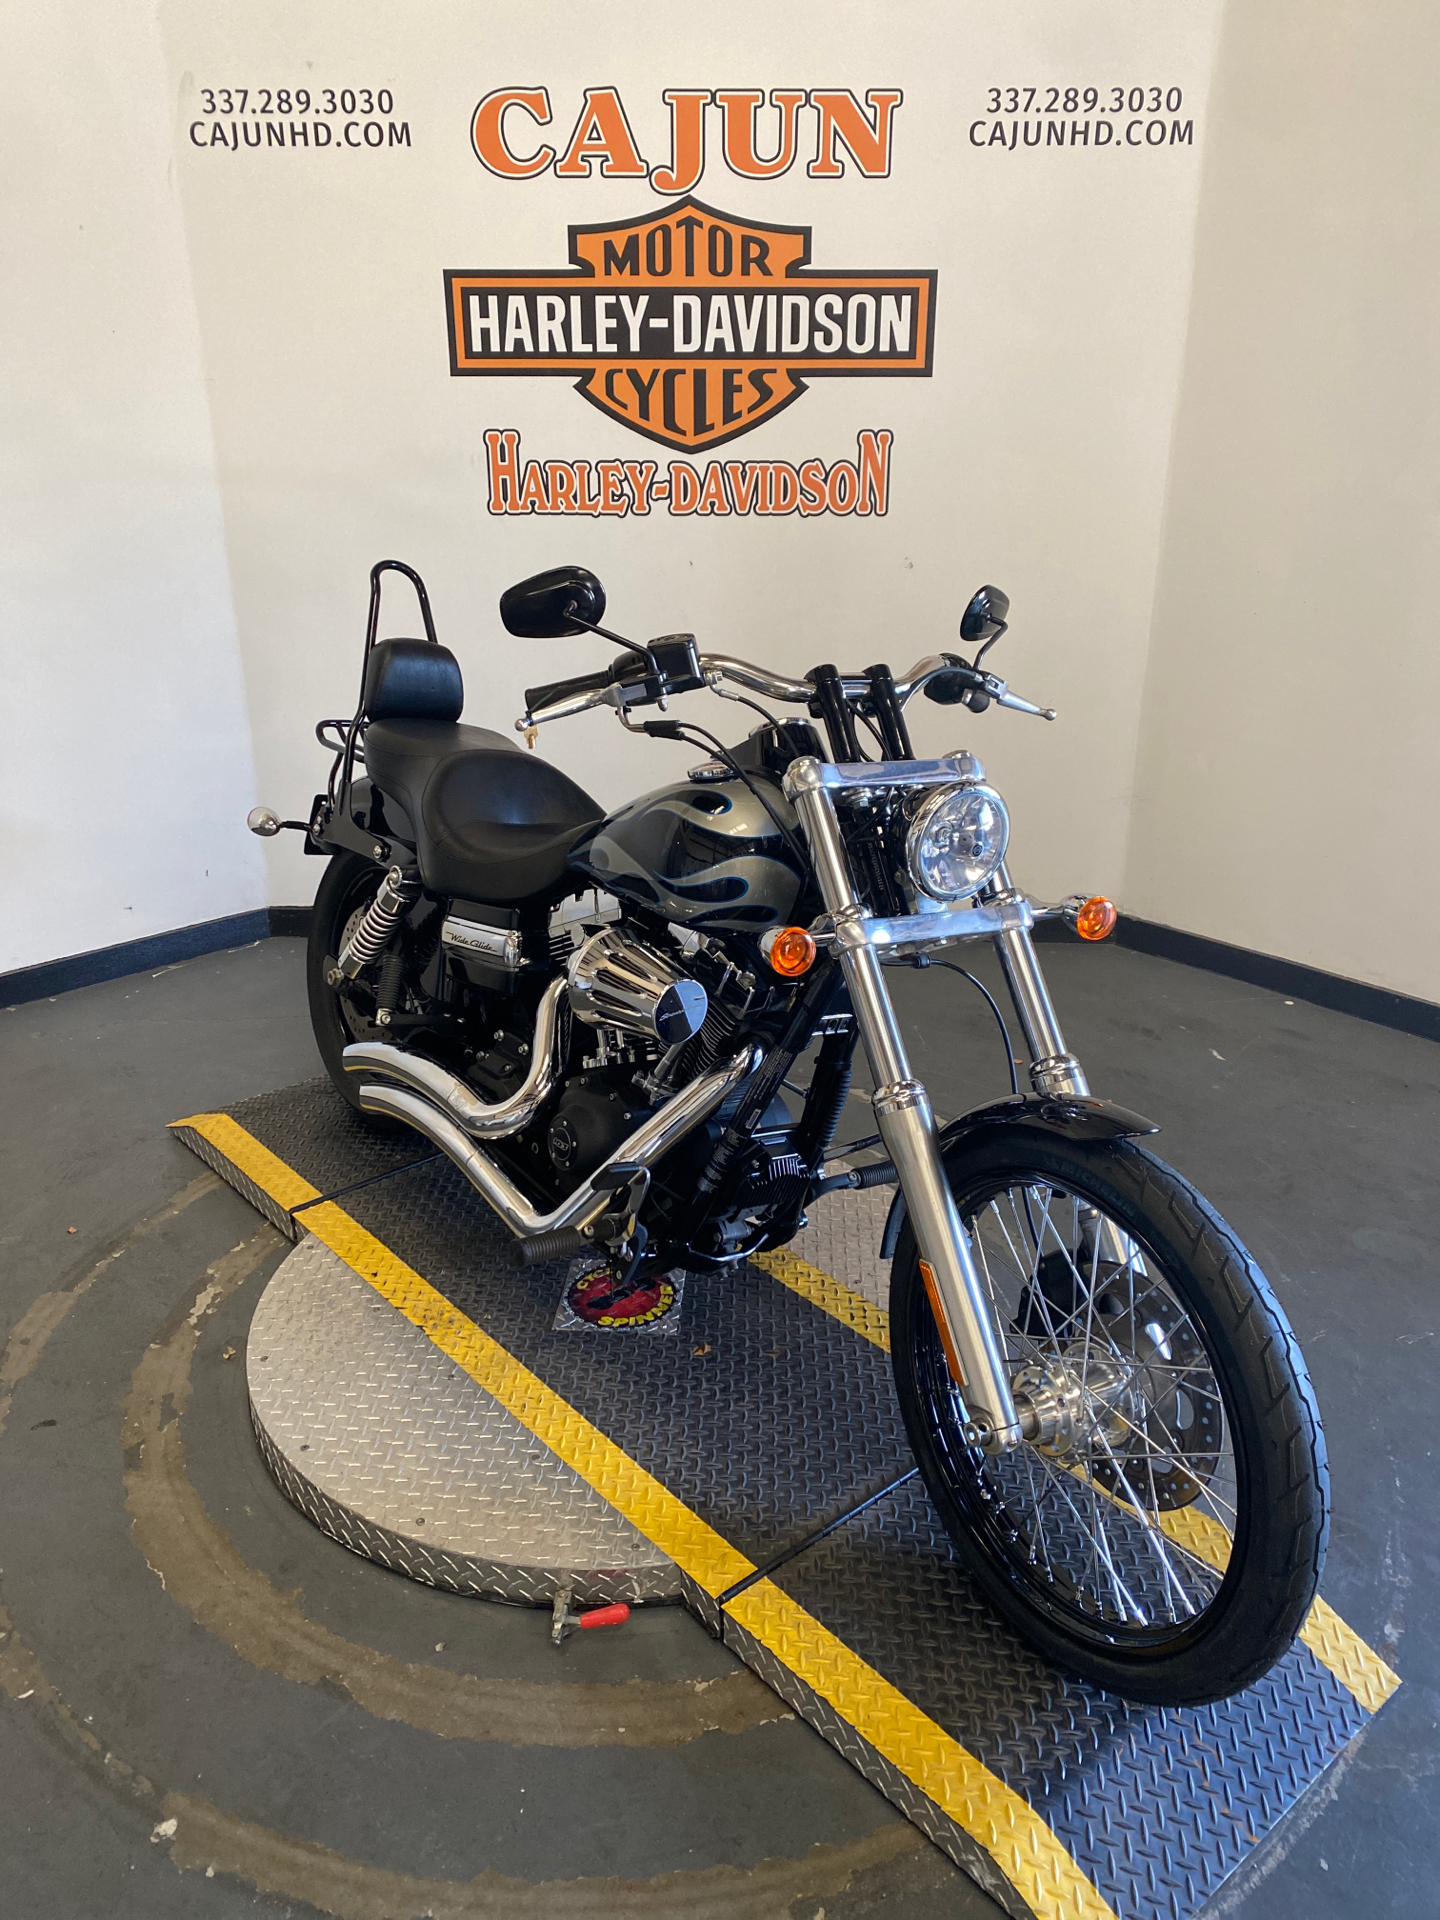 Used 2013 Harley Davidson Dyna Wide Glide Midnight Pearl With Flames Motorcycles In Scott La 304861